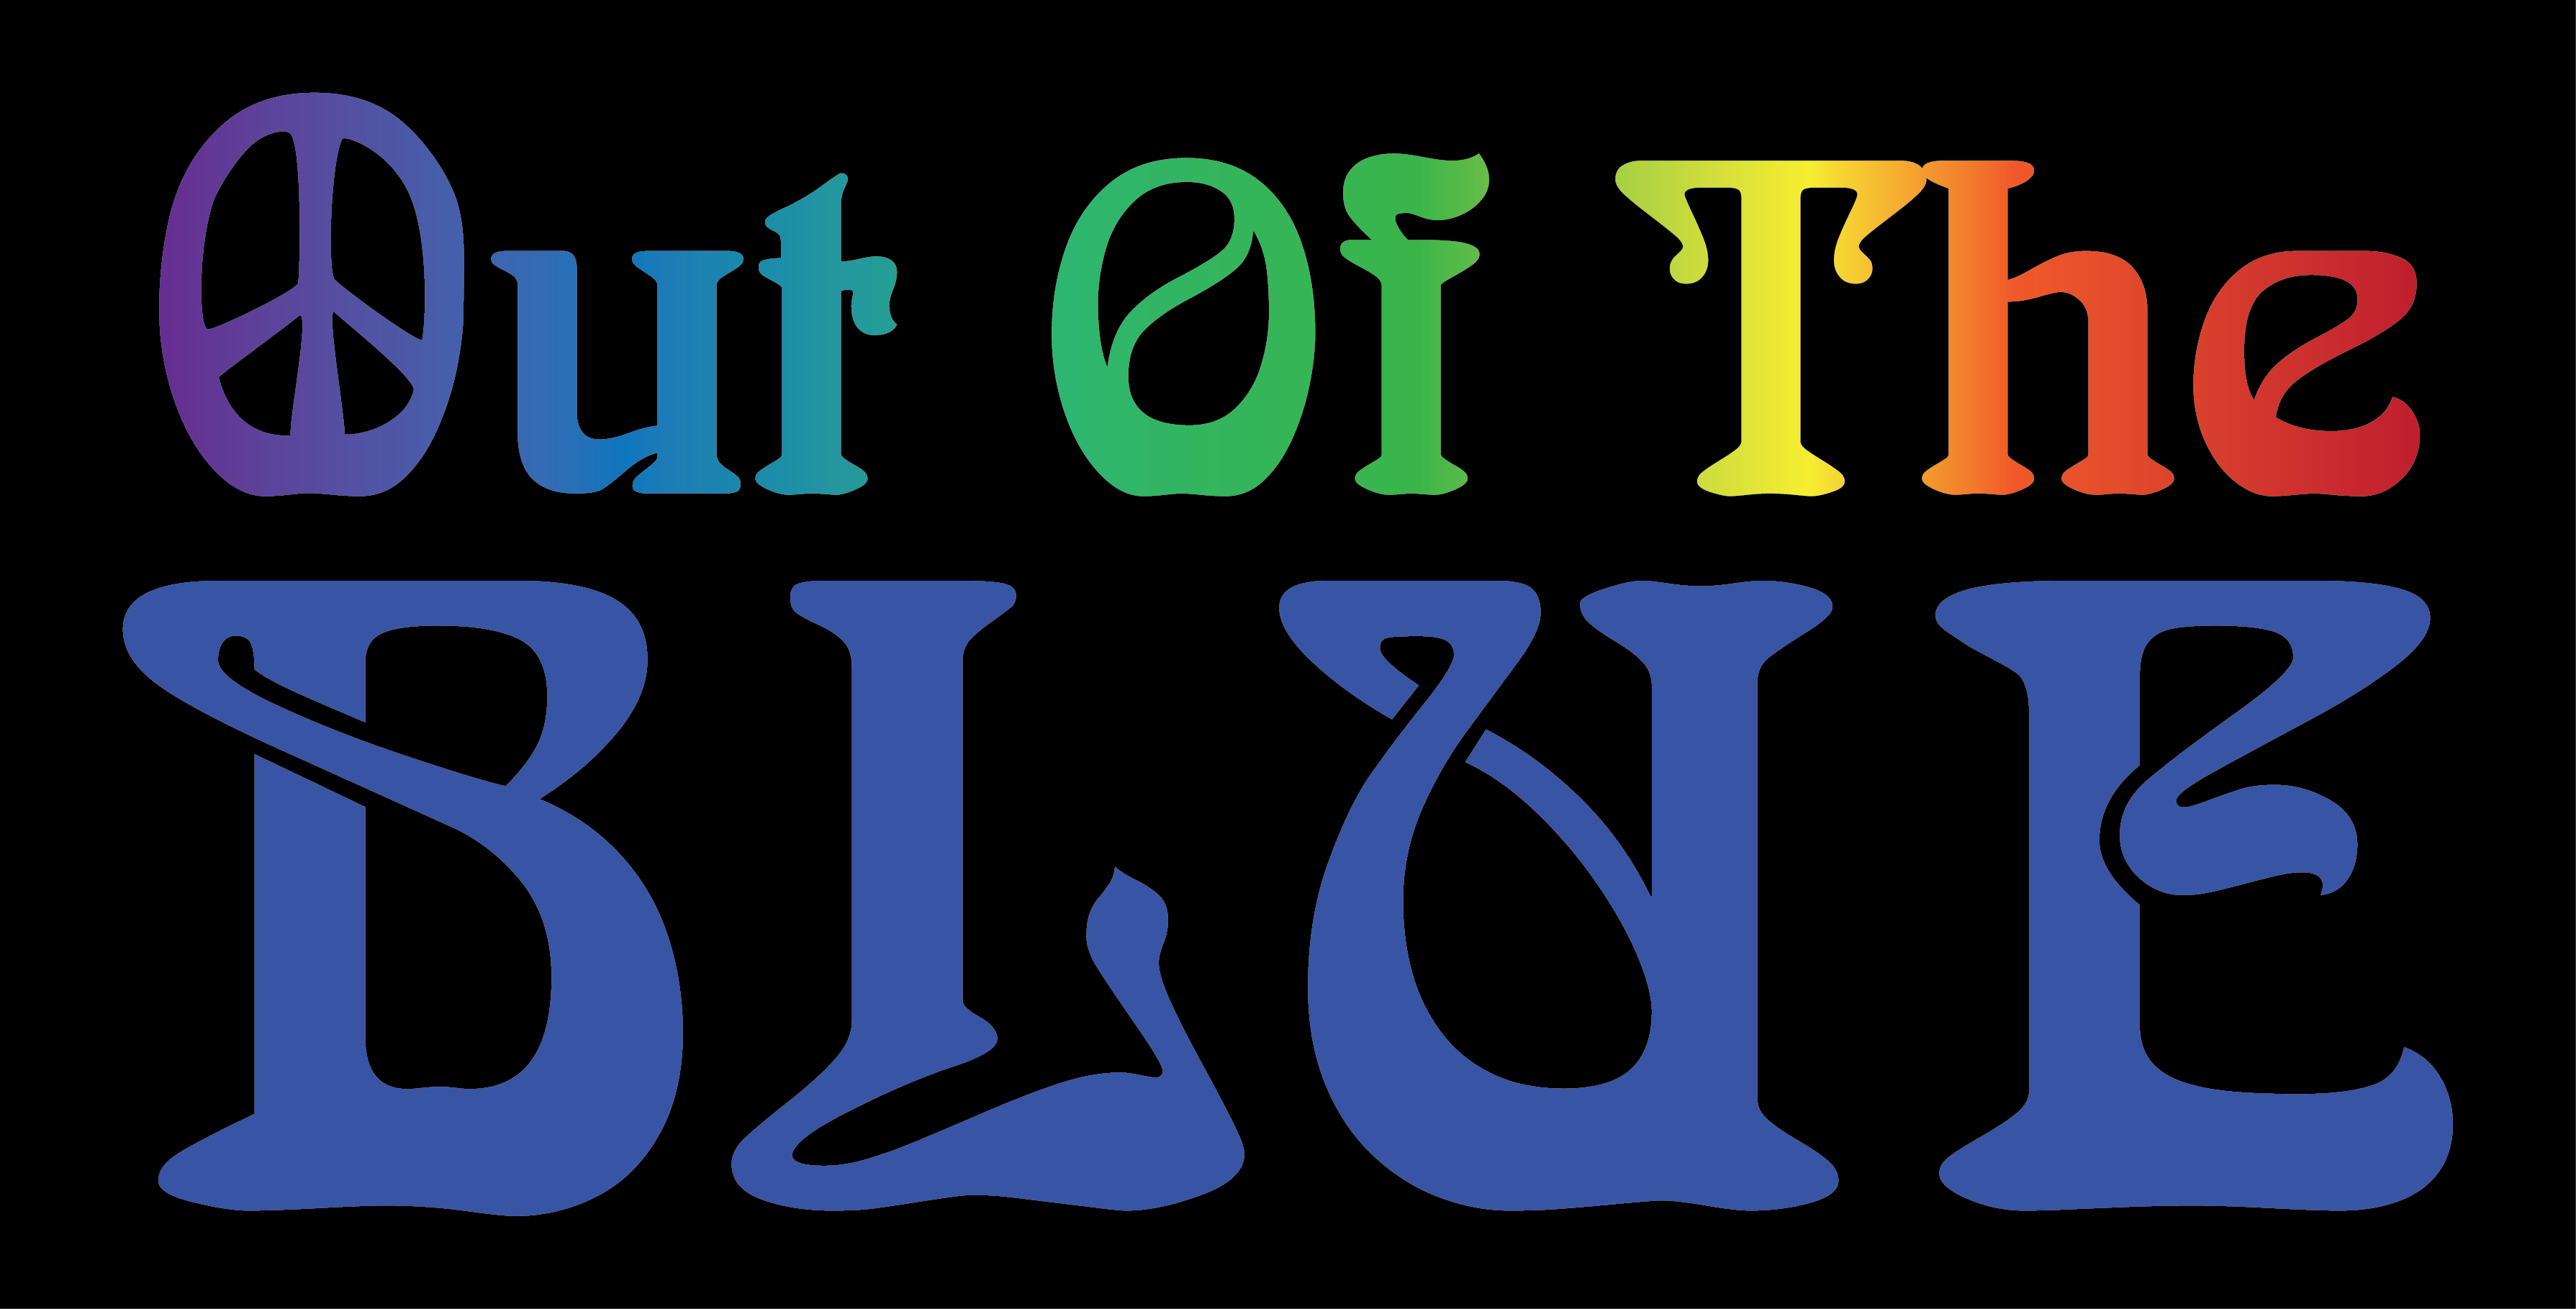 Out Of The Blue Wip Tagline - Liquid Blue